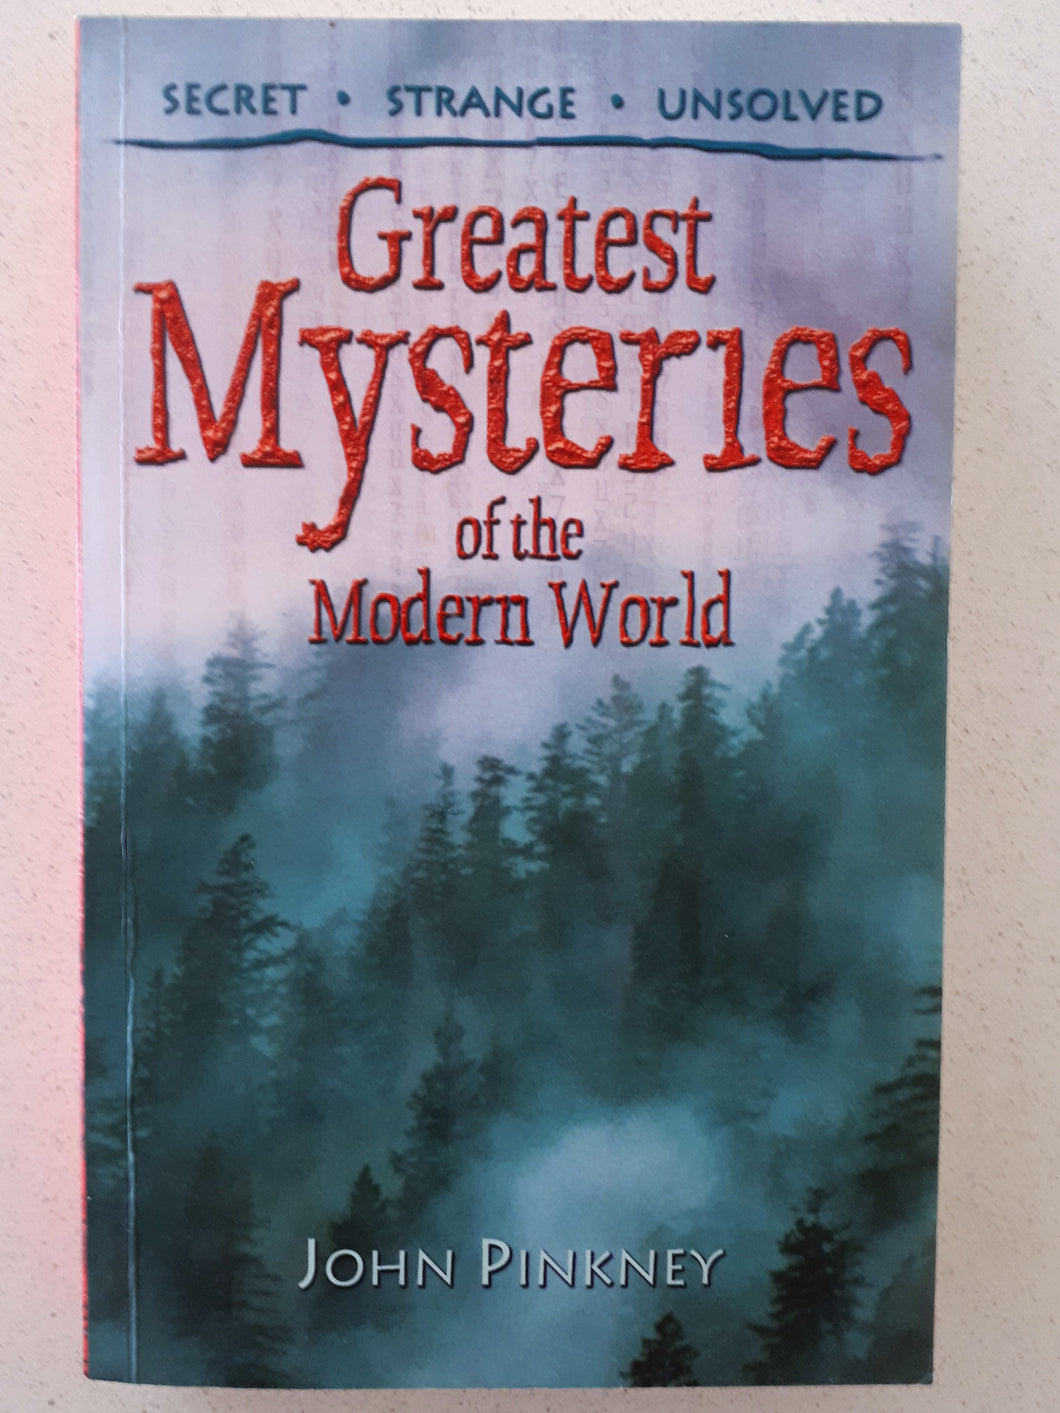 Great Mysteries of the Modern World by John Pinkney